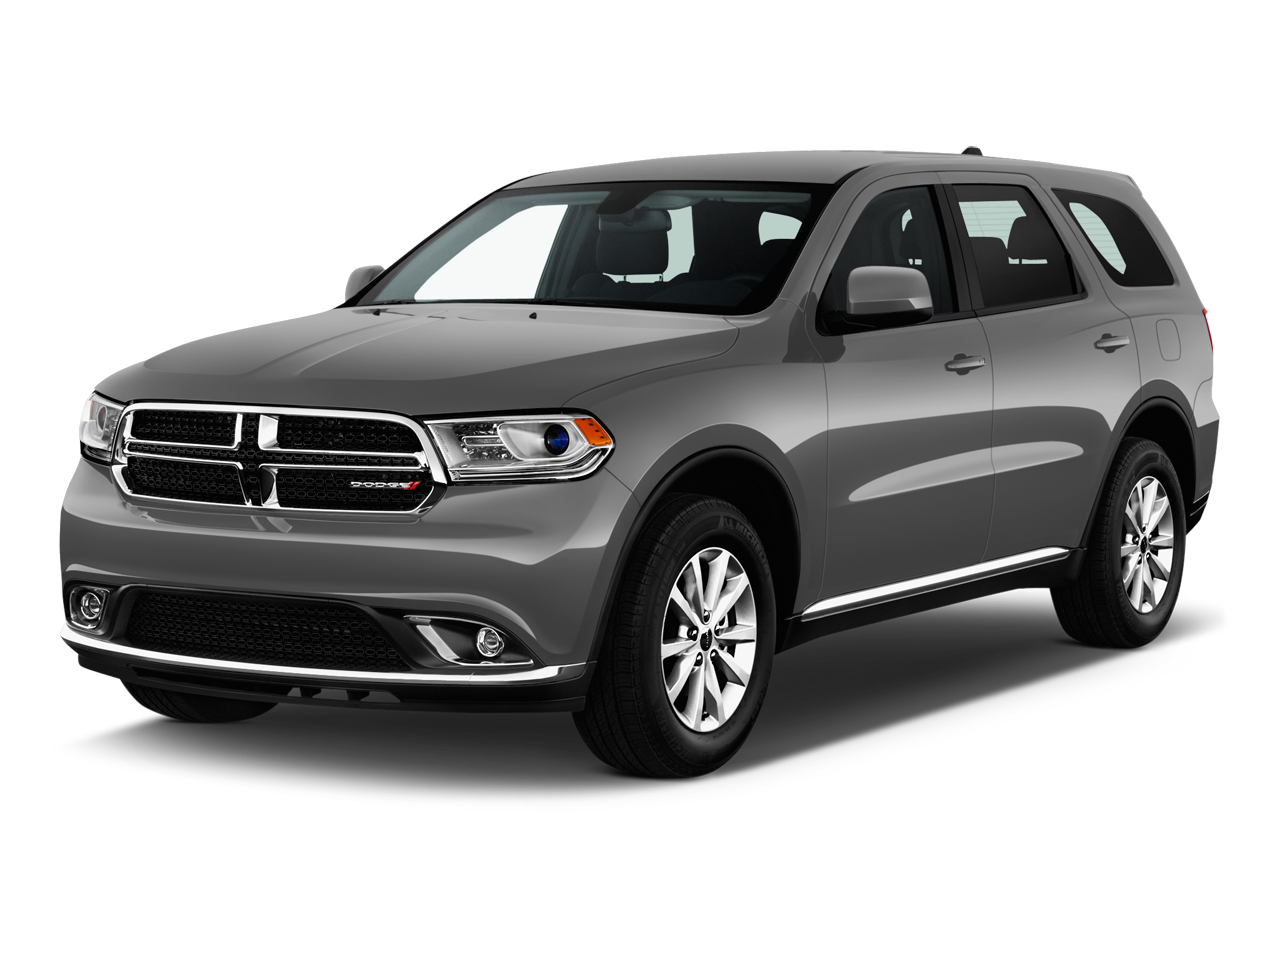 new 2017 dodge durango gt near boone ia pat clemons inc. Black Bedroom Furniture Sets. Home Design Ideas